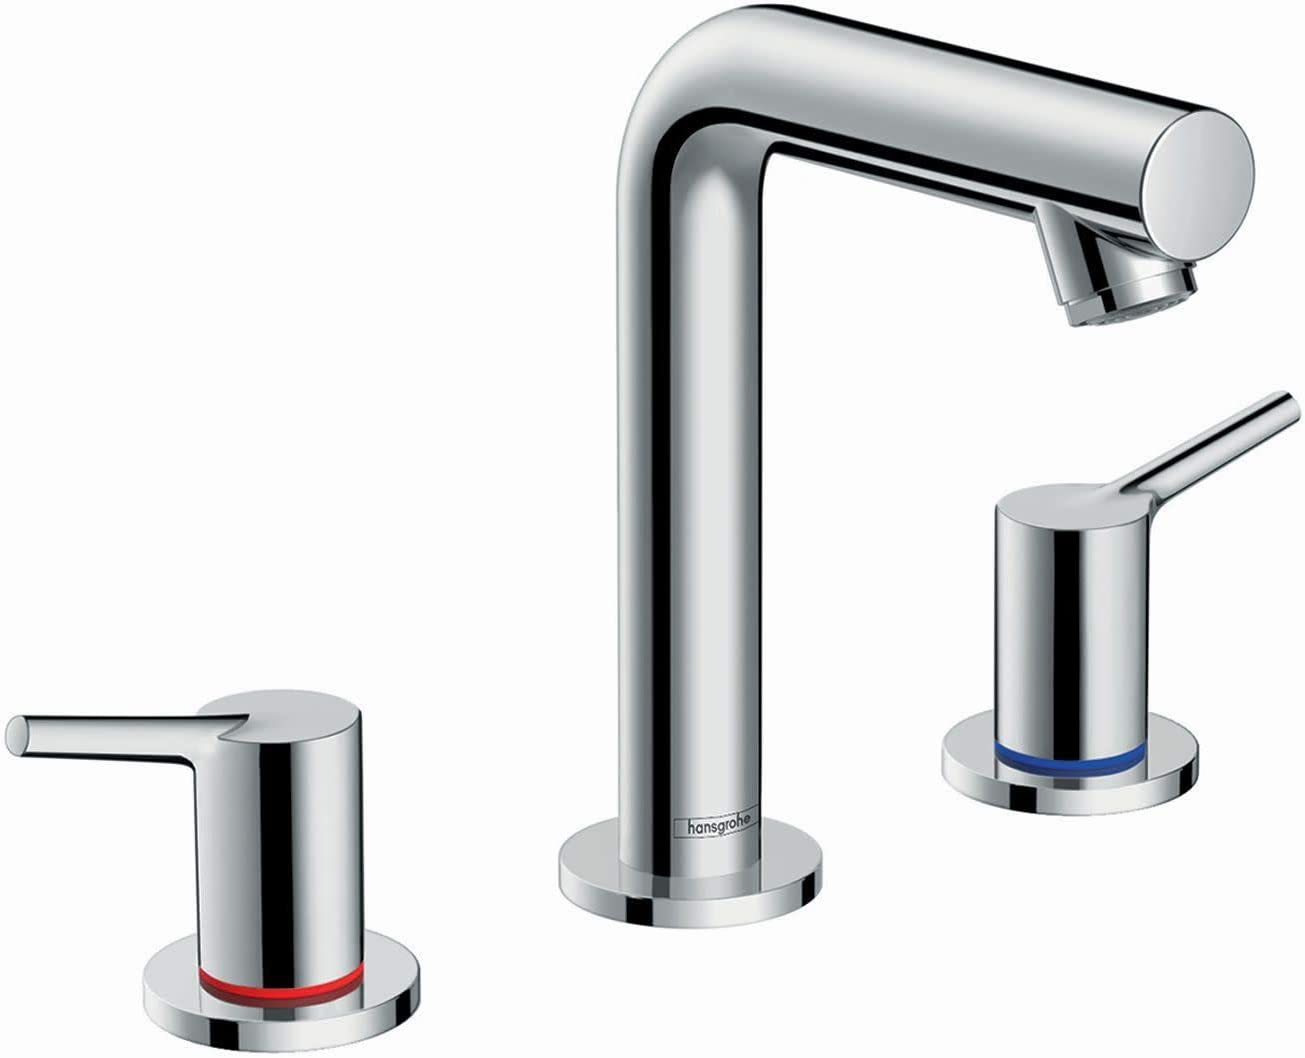 hansgrohe Talis S Modern Premium Easy Clean 2-Handle 3 7-inch Tall Bathroom Sink Faucet in Chrome, 72130001